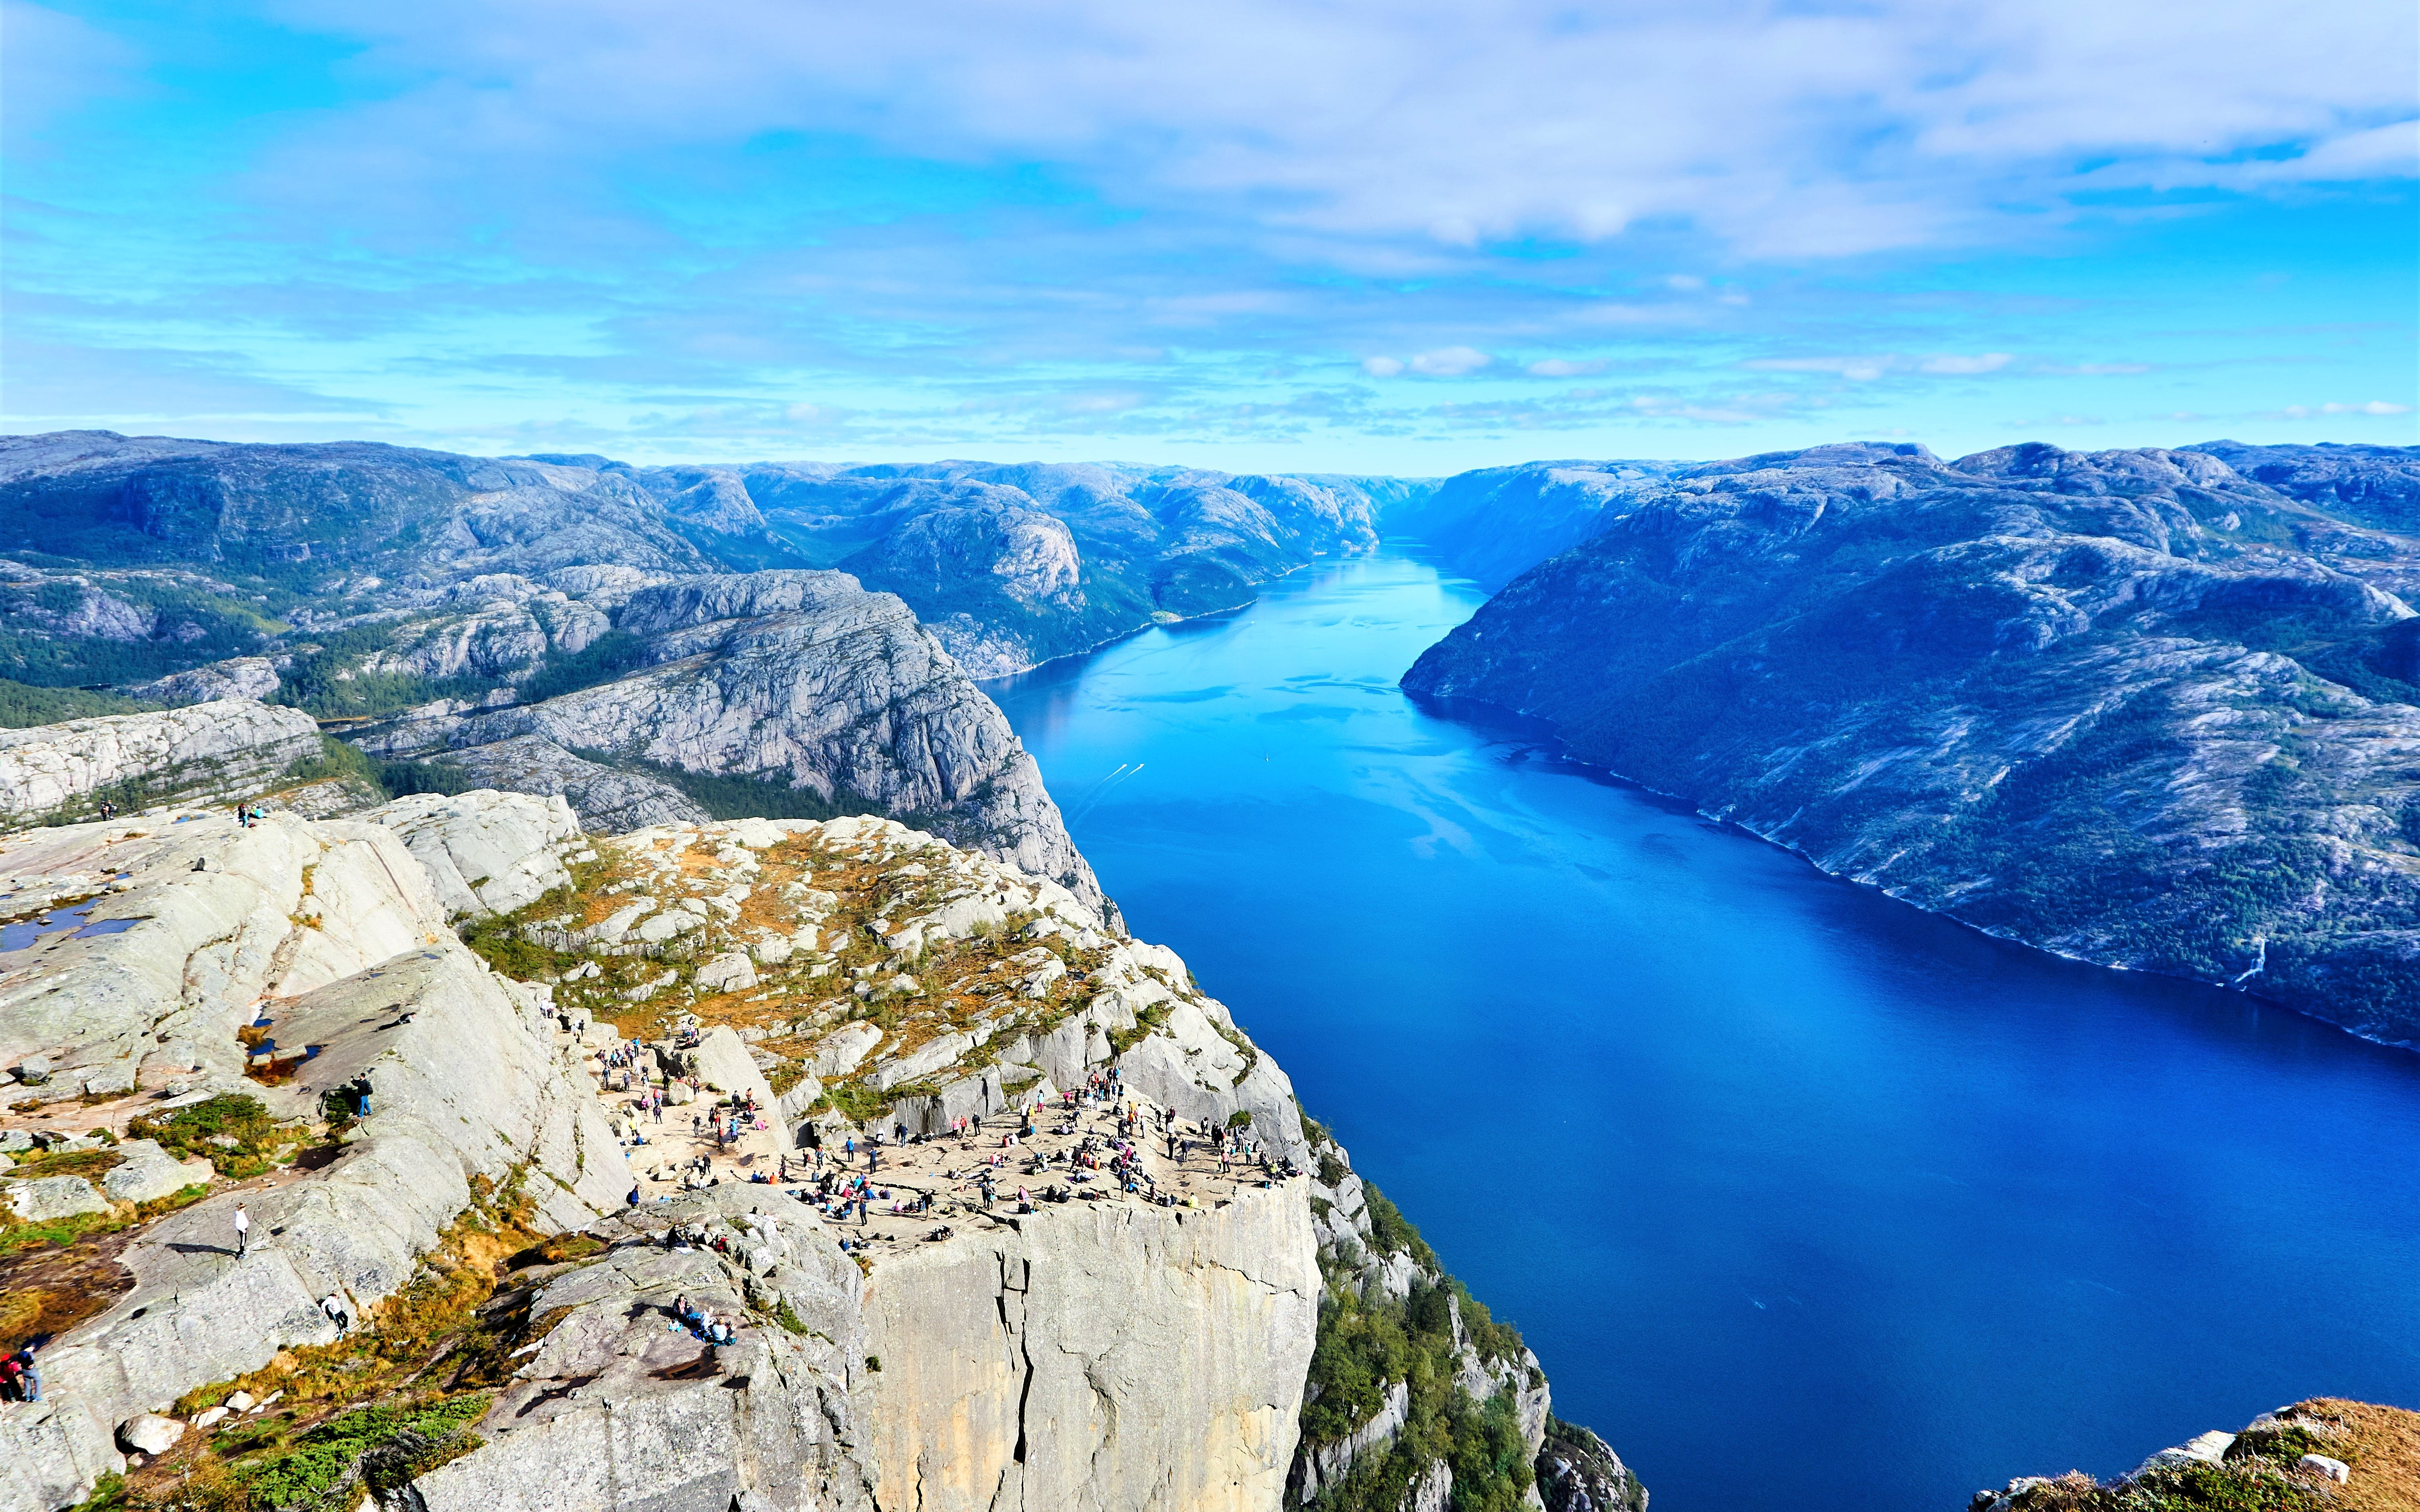 Hike, Kayak and Wild Camp the Norwegian Fjords